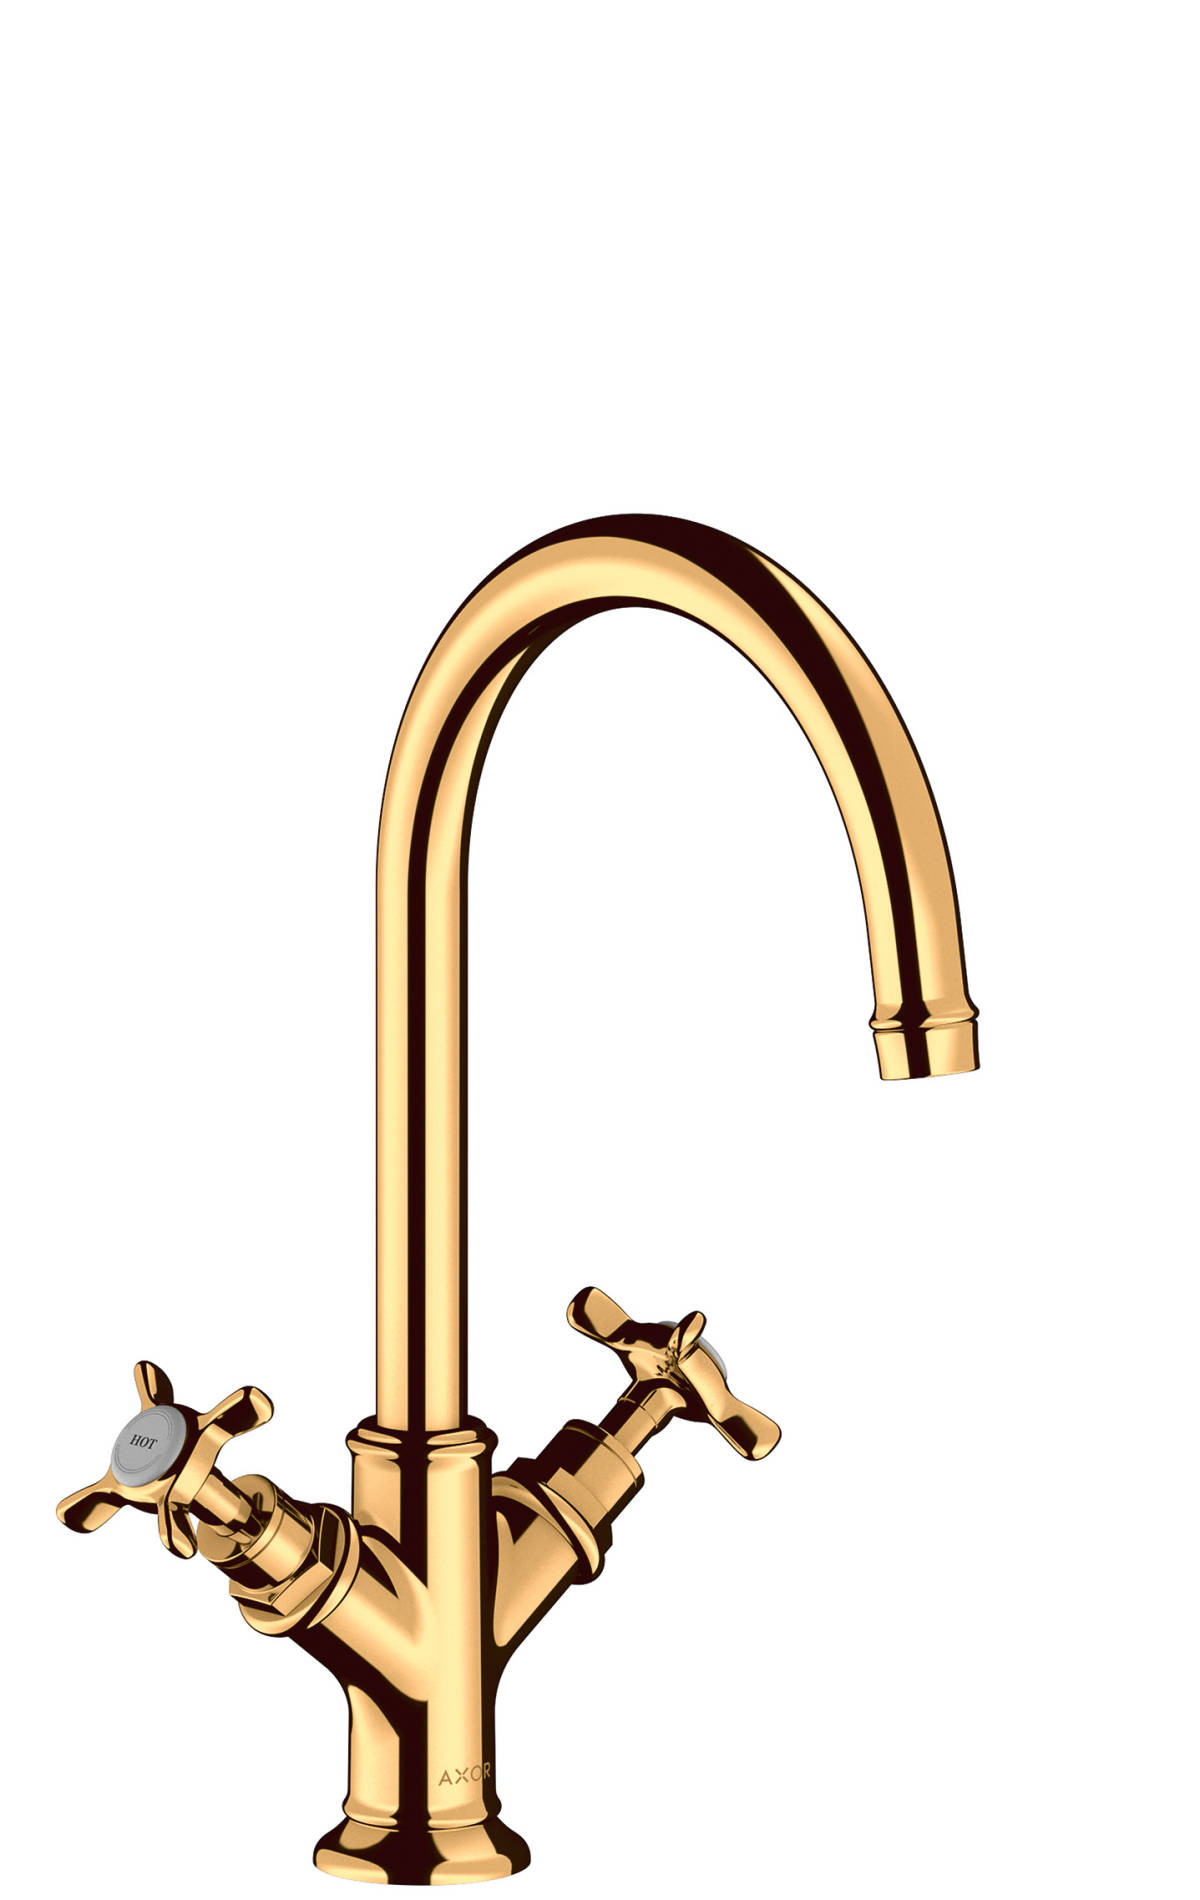 2-handle basin mixer 210 with cross handles and waste set, Polished Gold Optic, 16506990